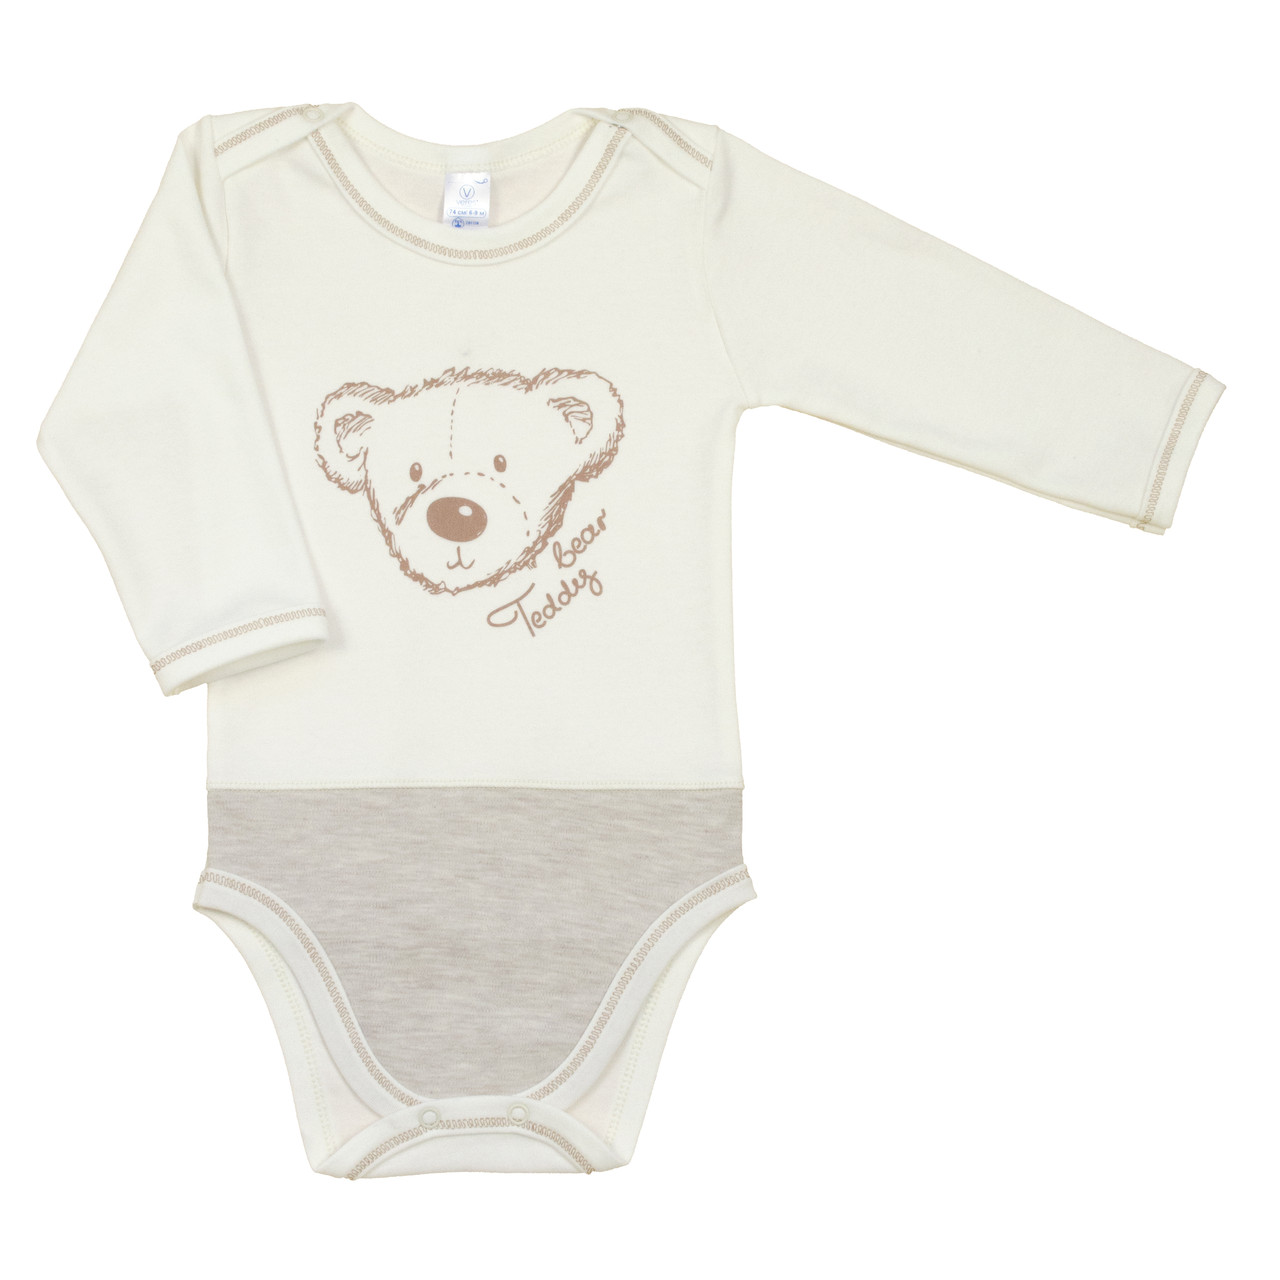 Боди сплошной Veres Teddy Bear milk интерлок молочный